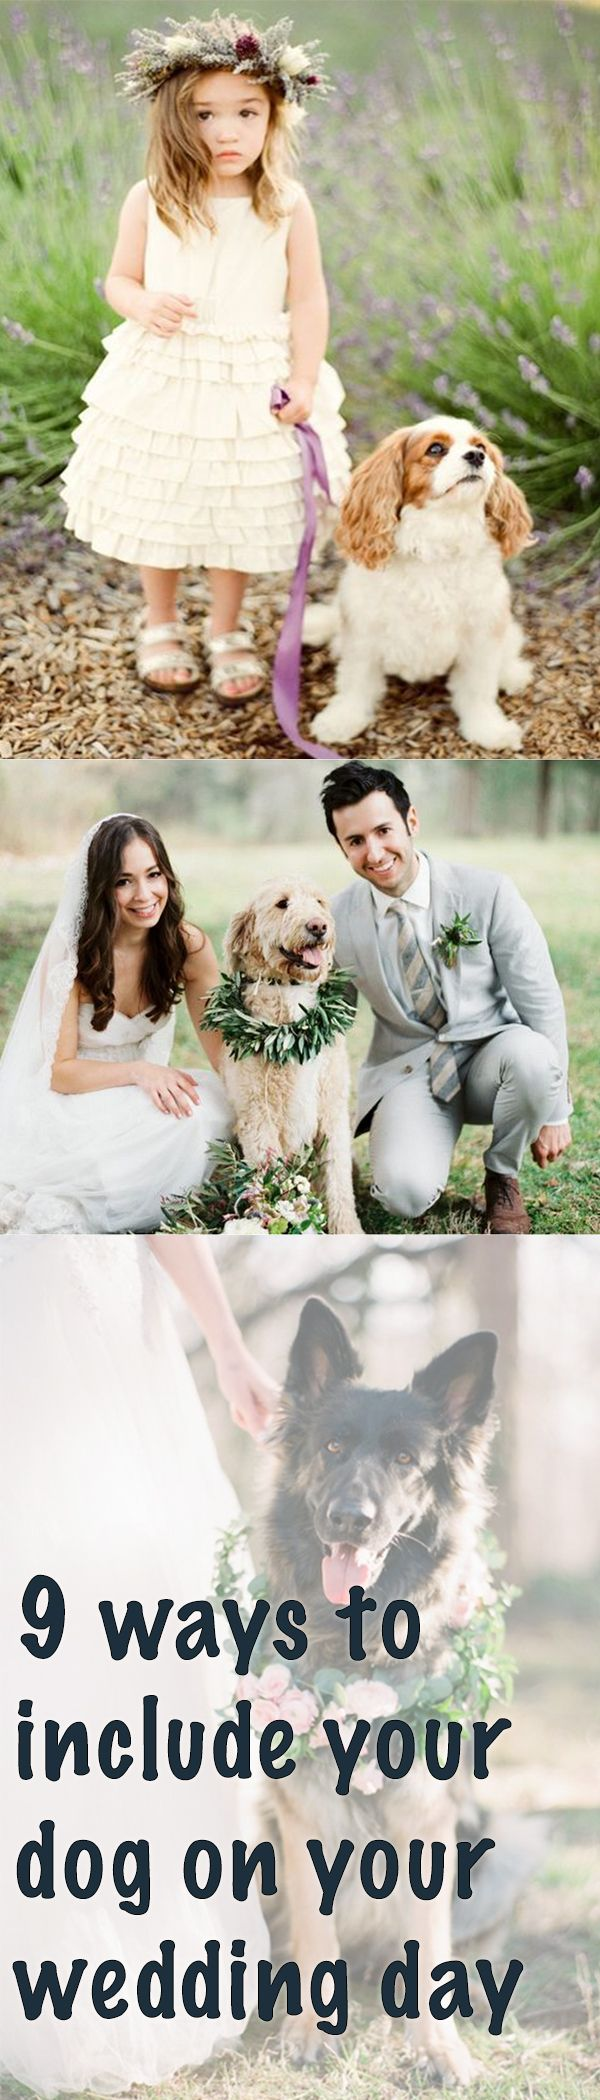 So your wedding day is approaching and you aren't sure how you can fit your beloved dog into the ceremony. Let us help!